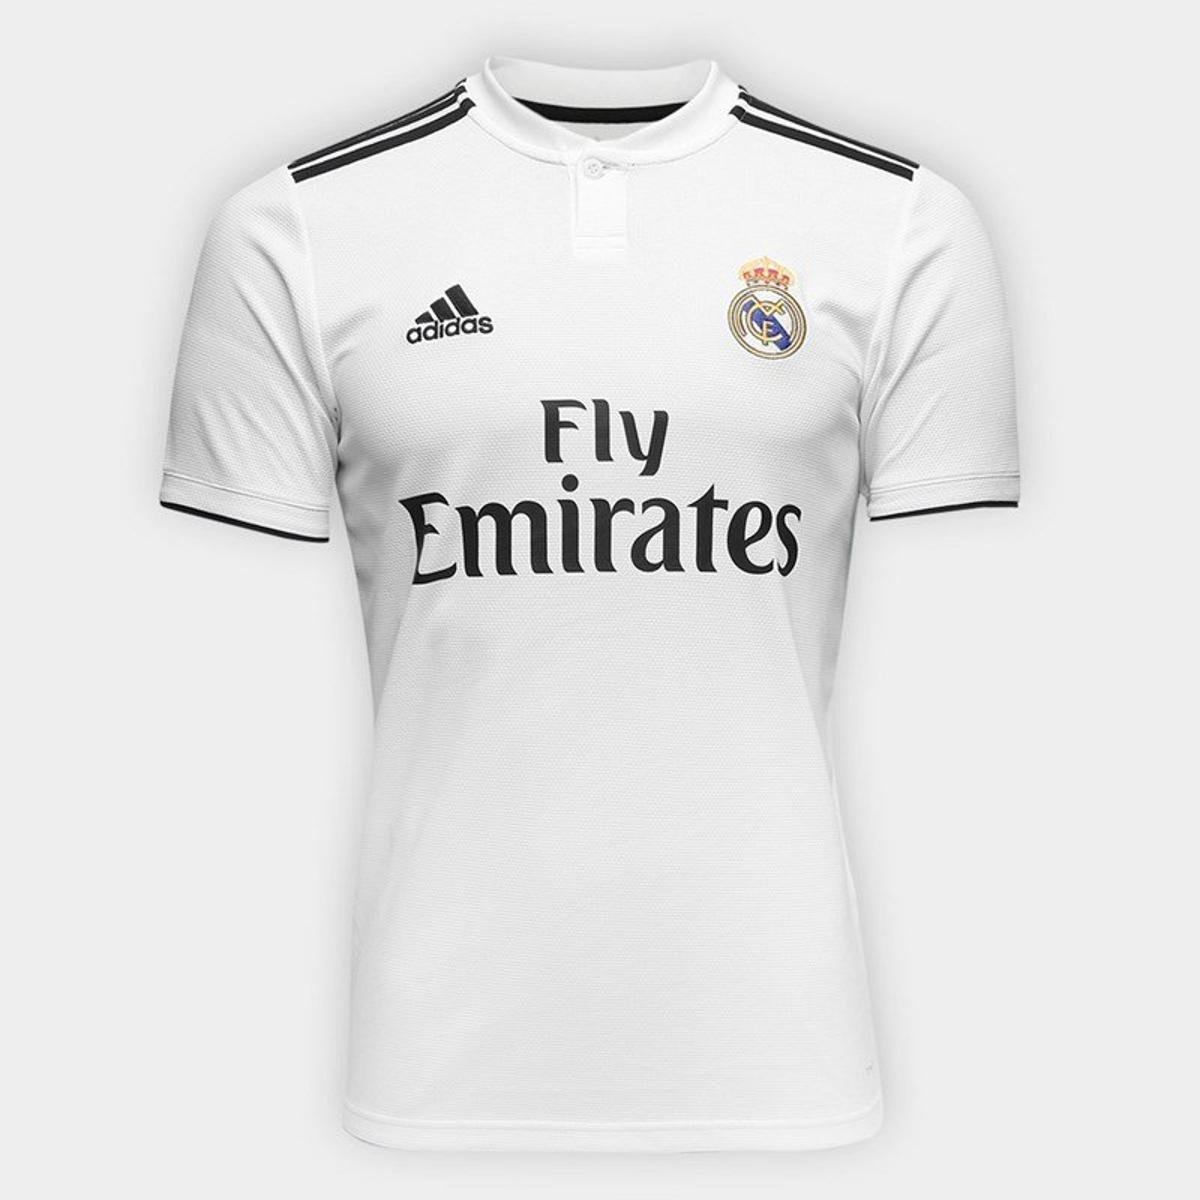 Camisa Real Madrid Home 2018 s n° Torcedor Adidas Masculina - Branco ... 5e2be678432bf